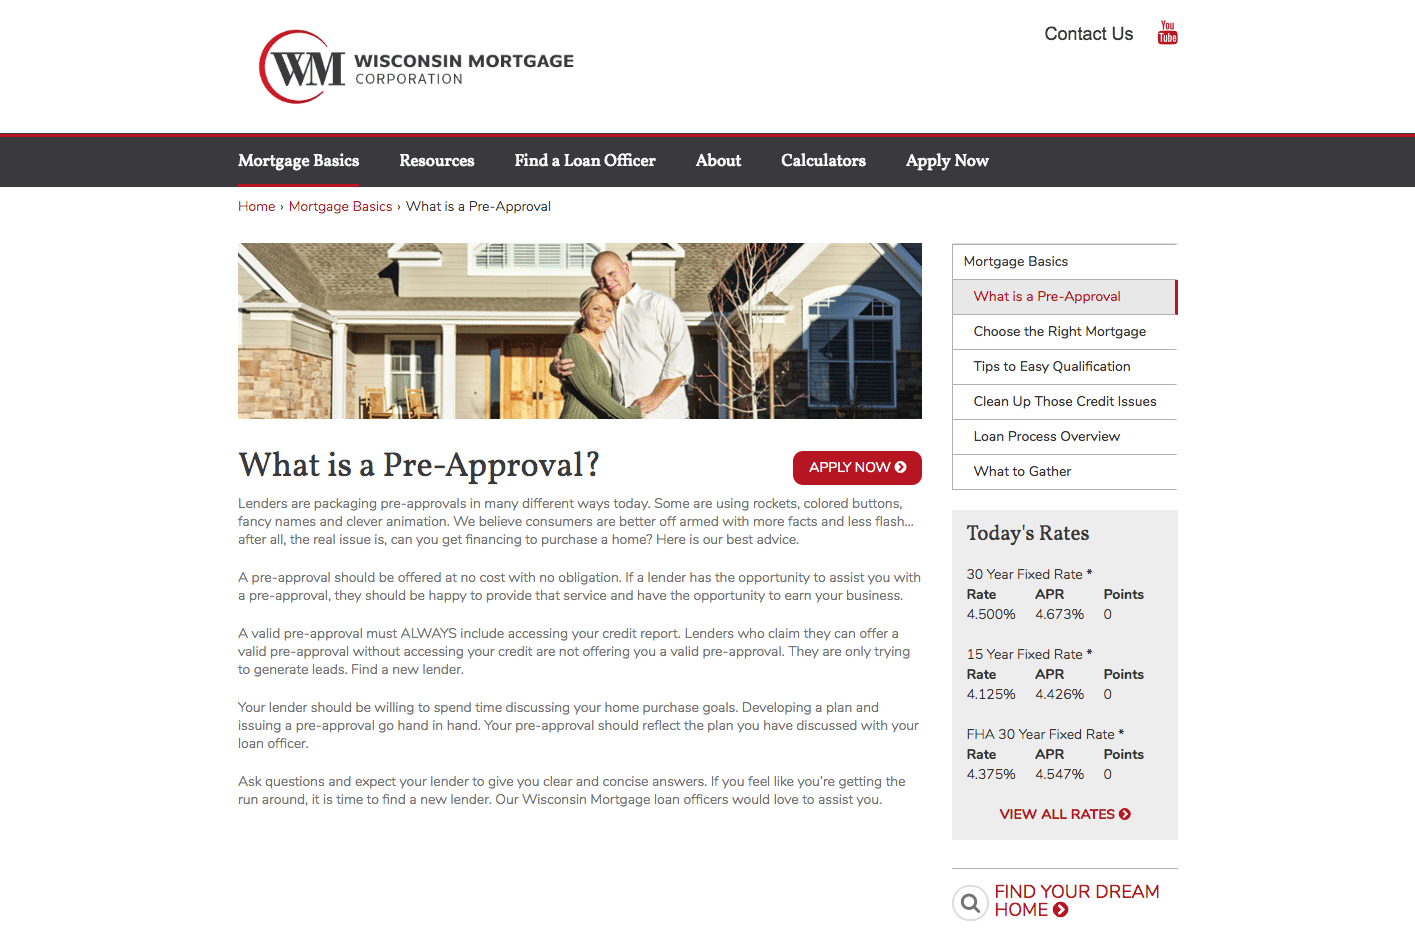 Wisconsin Mortgage Preapproval webpage